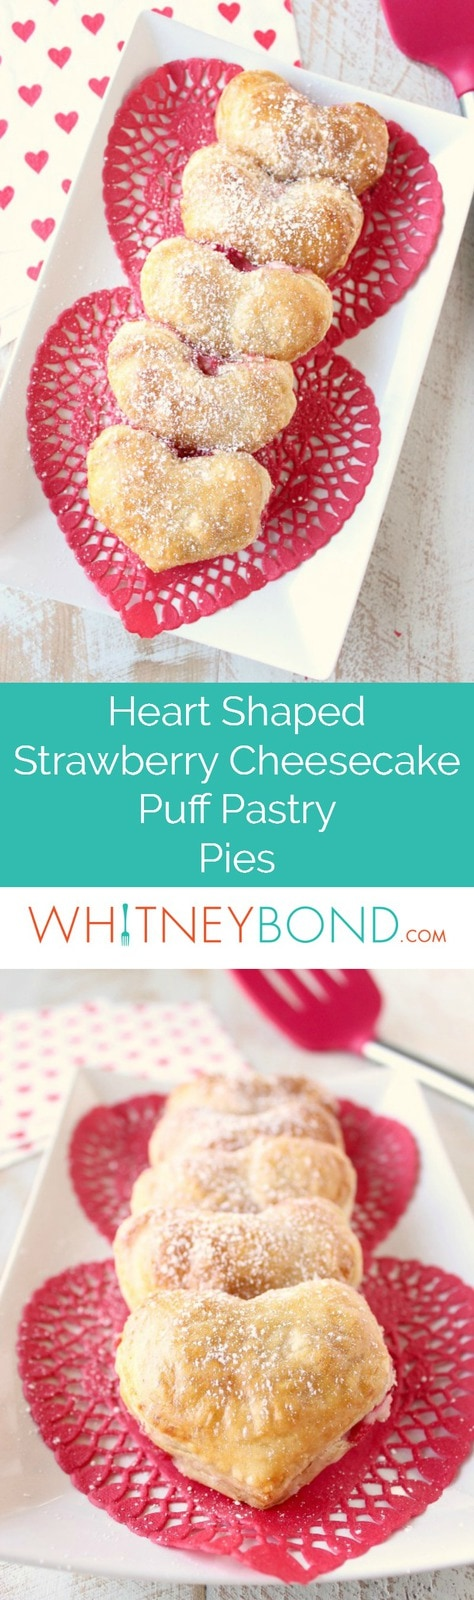 Strawberry cheesecake filling is wrapped up in heart shaped puff pastry dough in this mini strawberry cheesecake pie recipe, perfect for Valentine's Day!